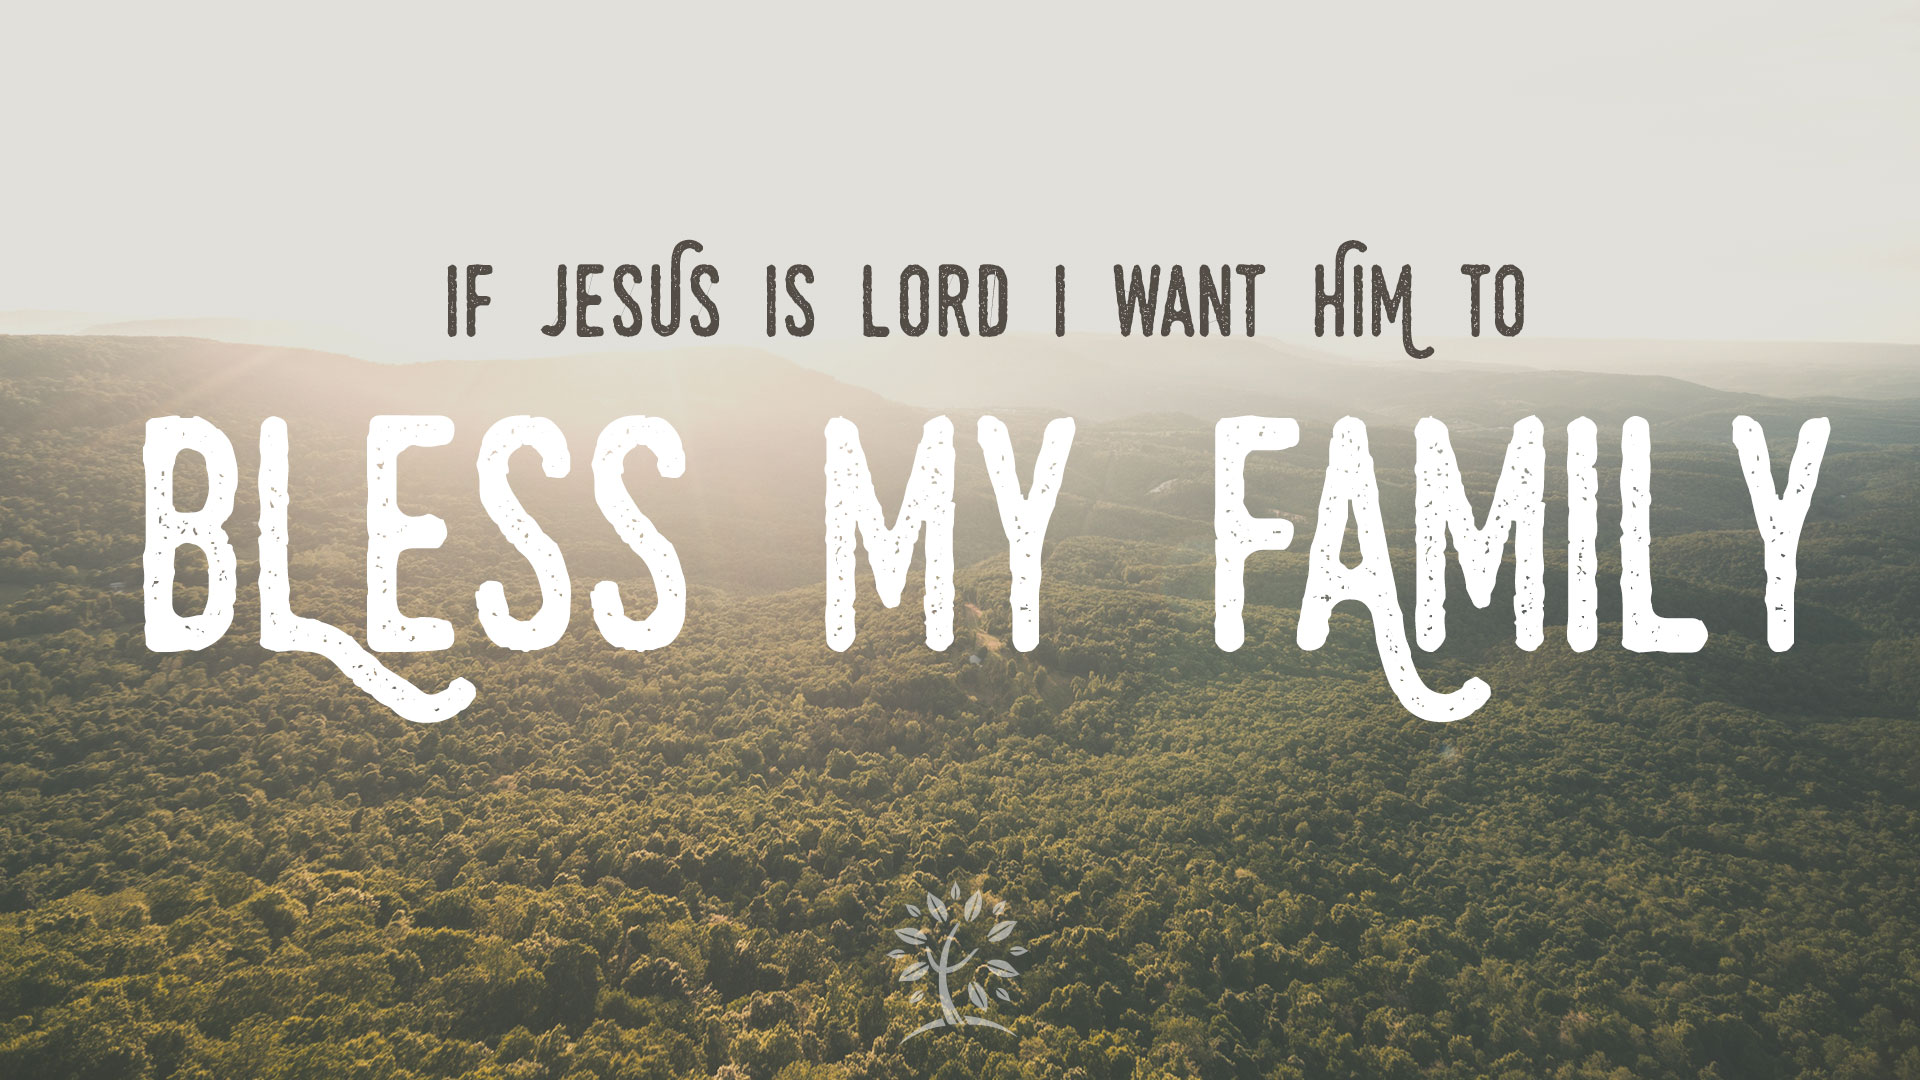 Series: <span>I Want Jesus To Bless My Family</span>